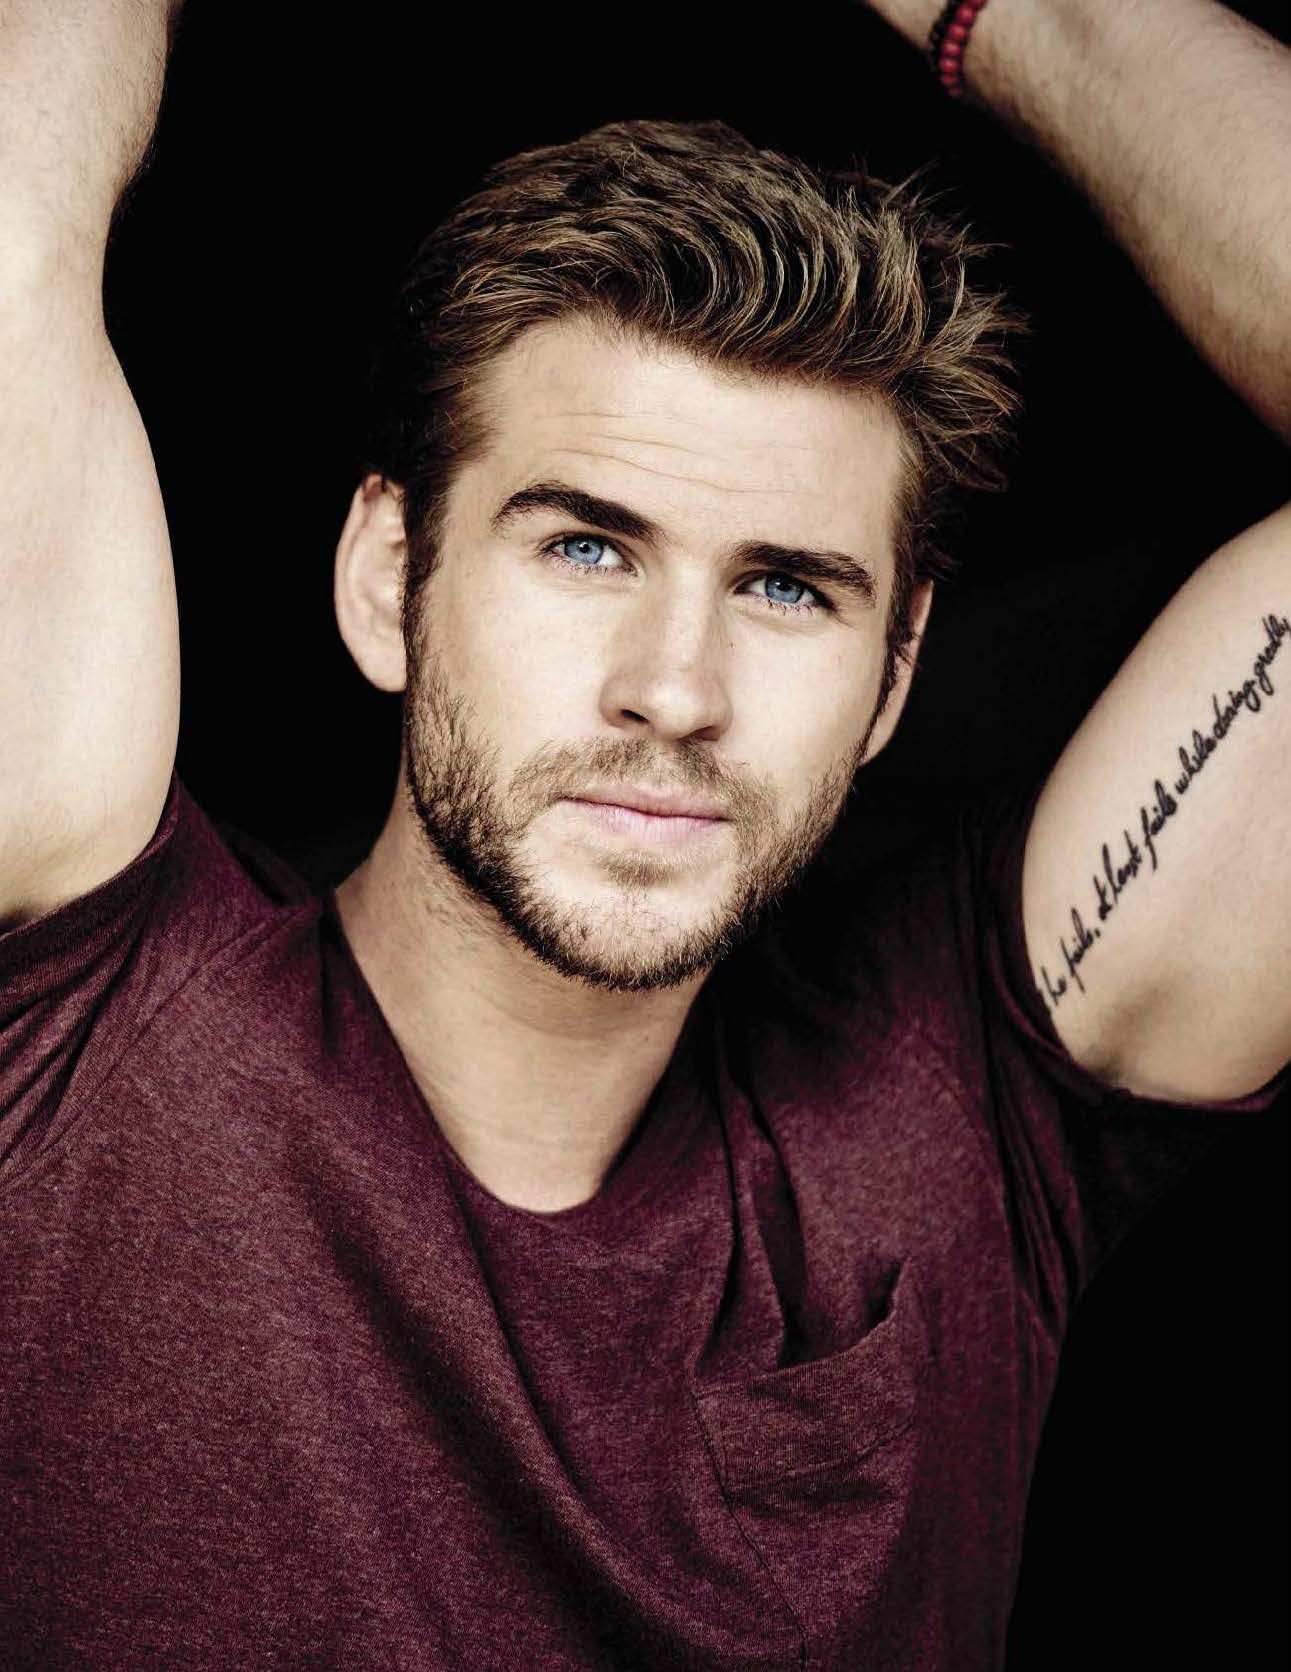 Liam Hemsworth - Liam Hemsworth: Beautiful as a god, he married her 7 years older, she got married too - Photo 13.